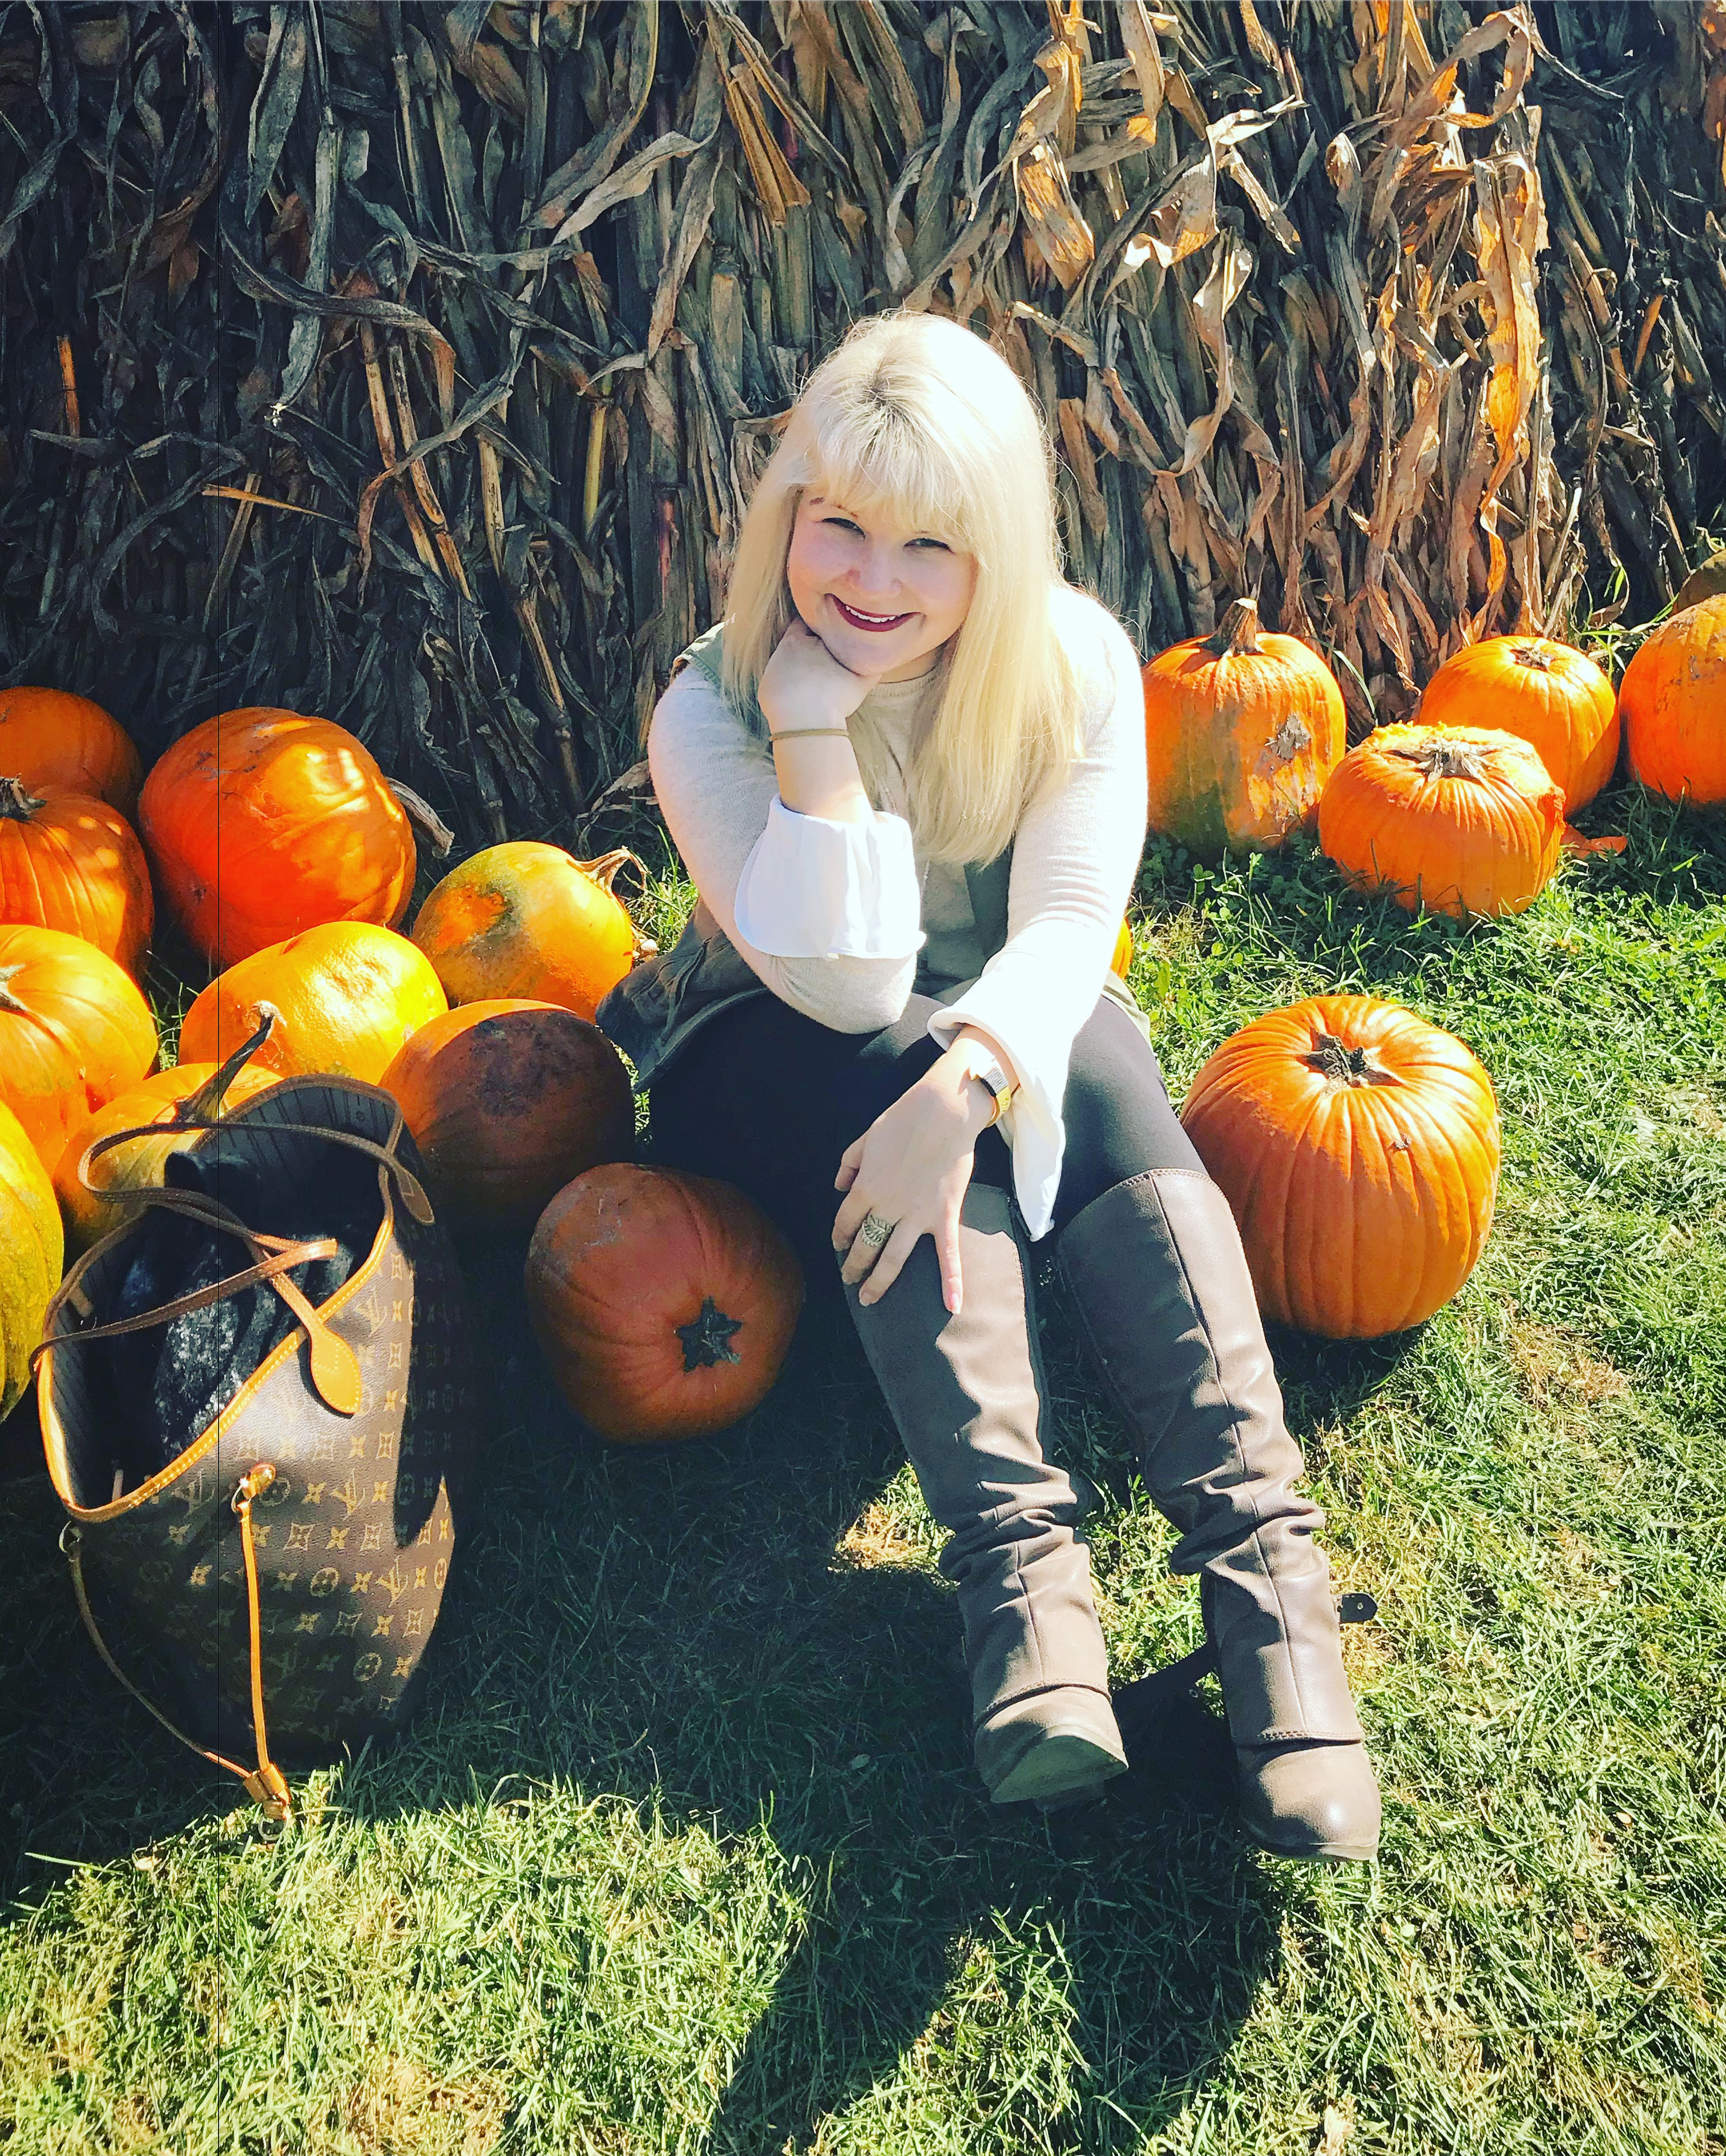 Wanderlusting: Pumpkin Picking